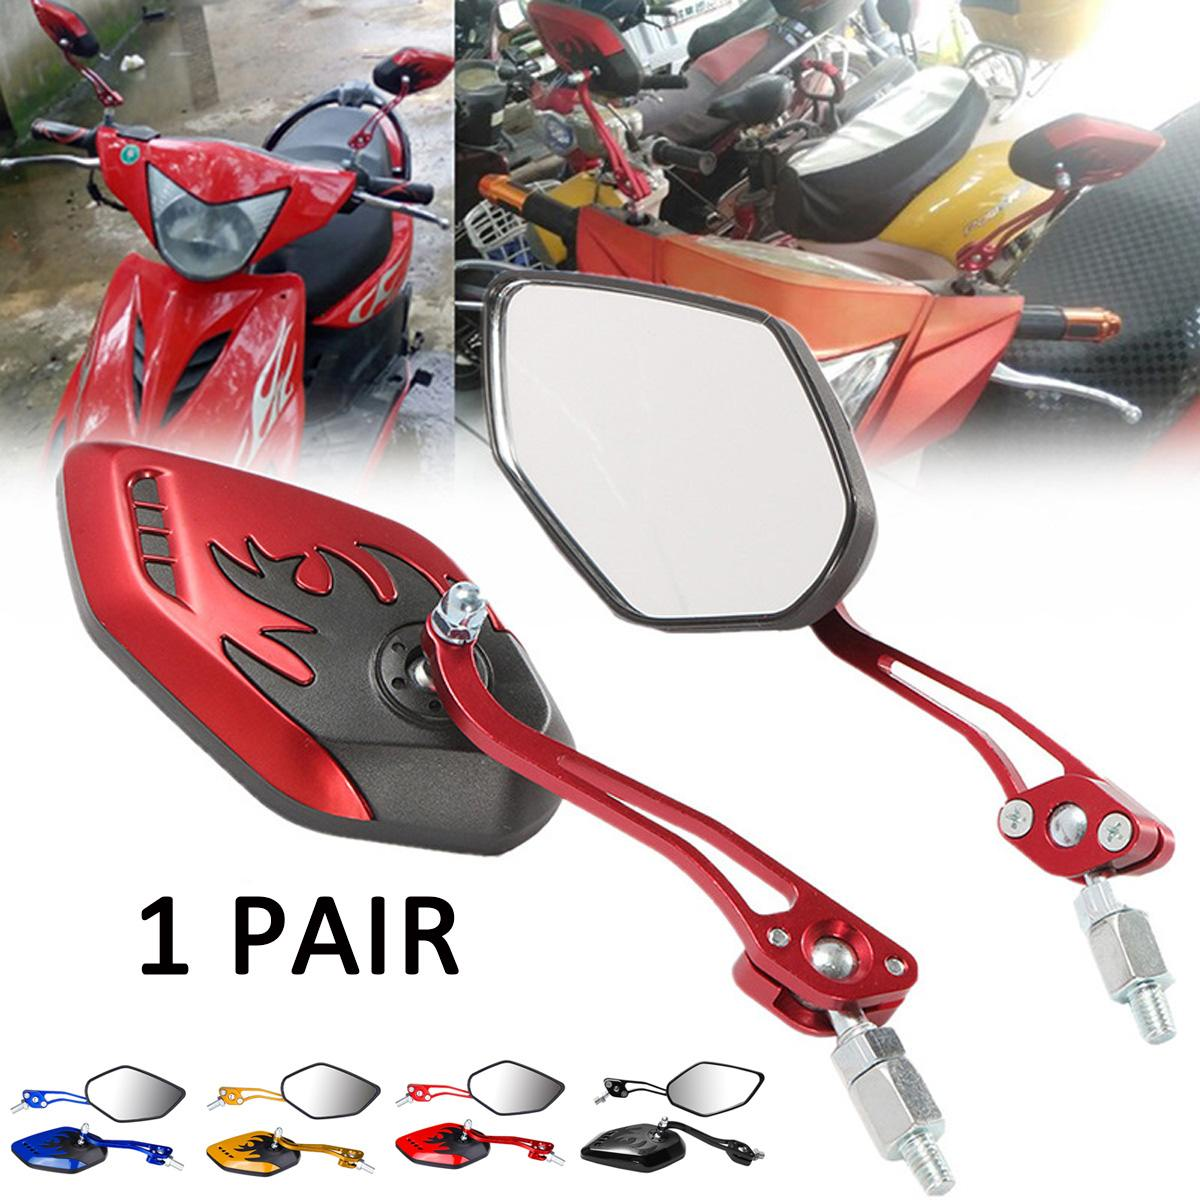 2PCS/Set Universal Motorcycle Rearview Mirrors Motorbike 360 Degree Rotation Motorcycle Motorbike Scooter Side Mirrors 8 / 10mm